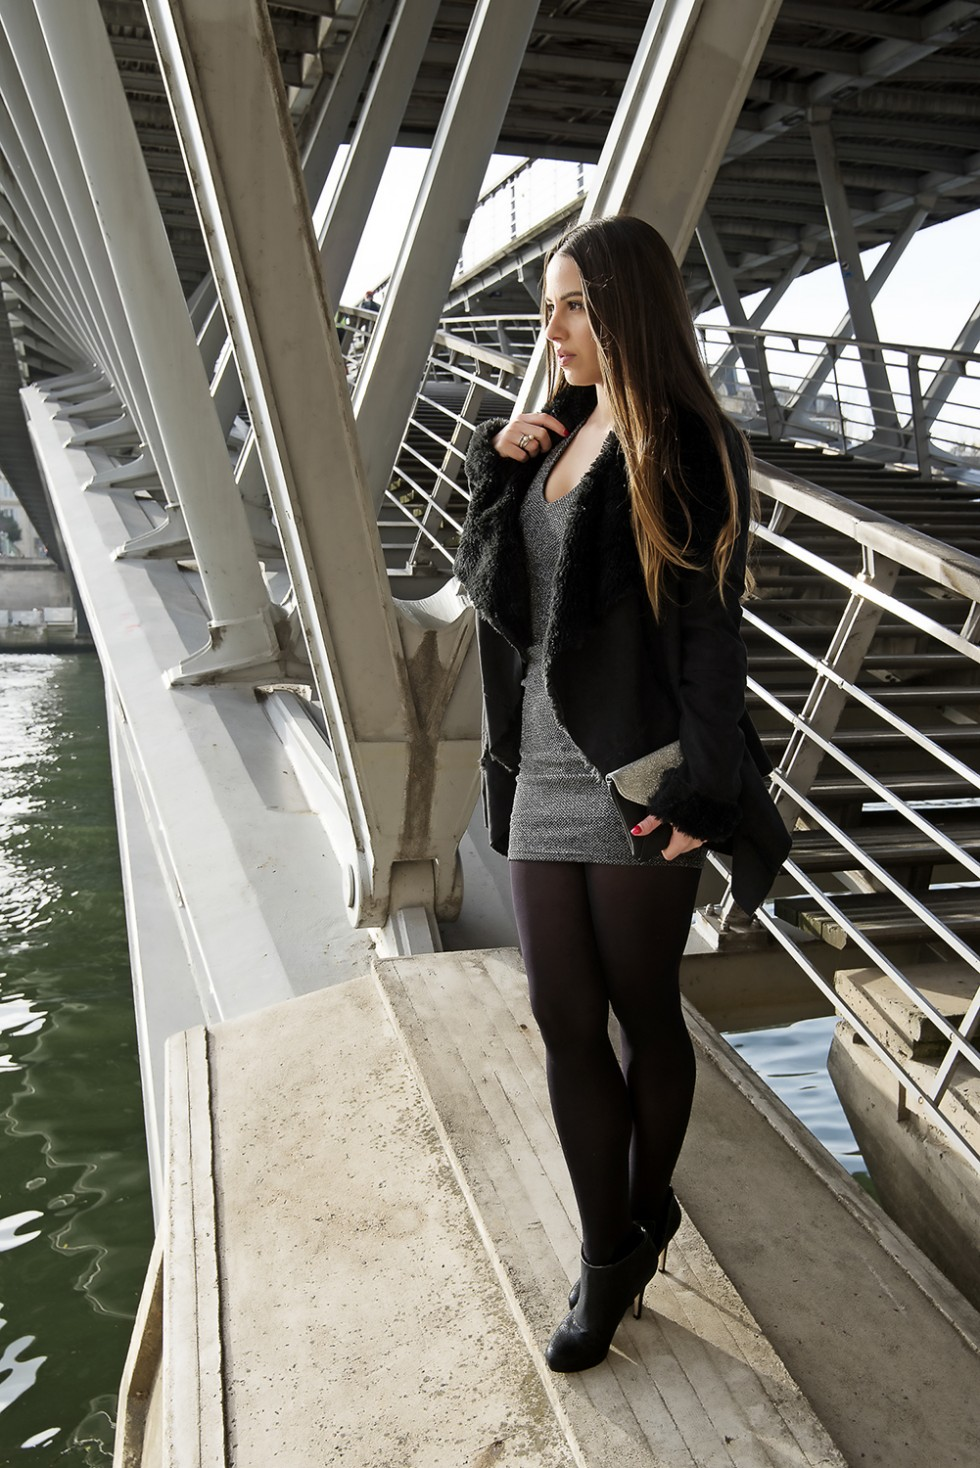 Maria Rosaria Rizzo - Shooting paris